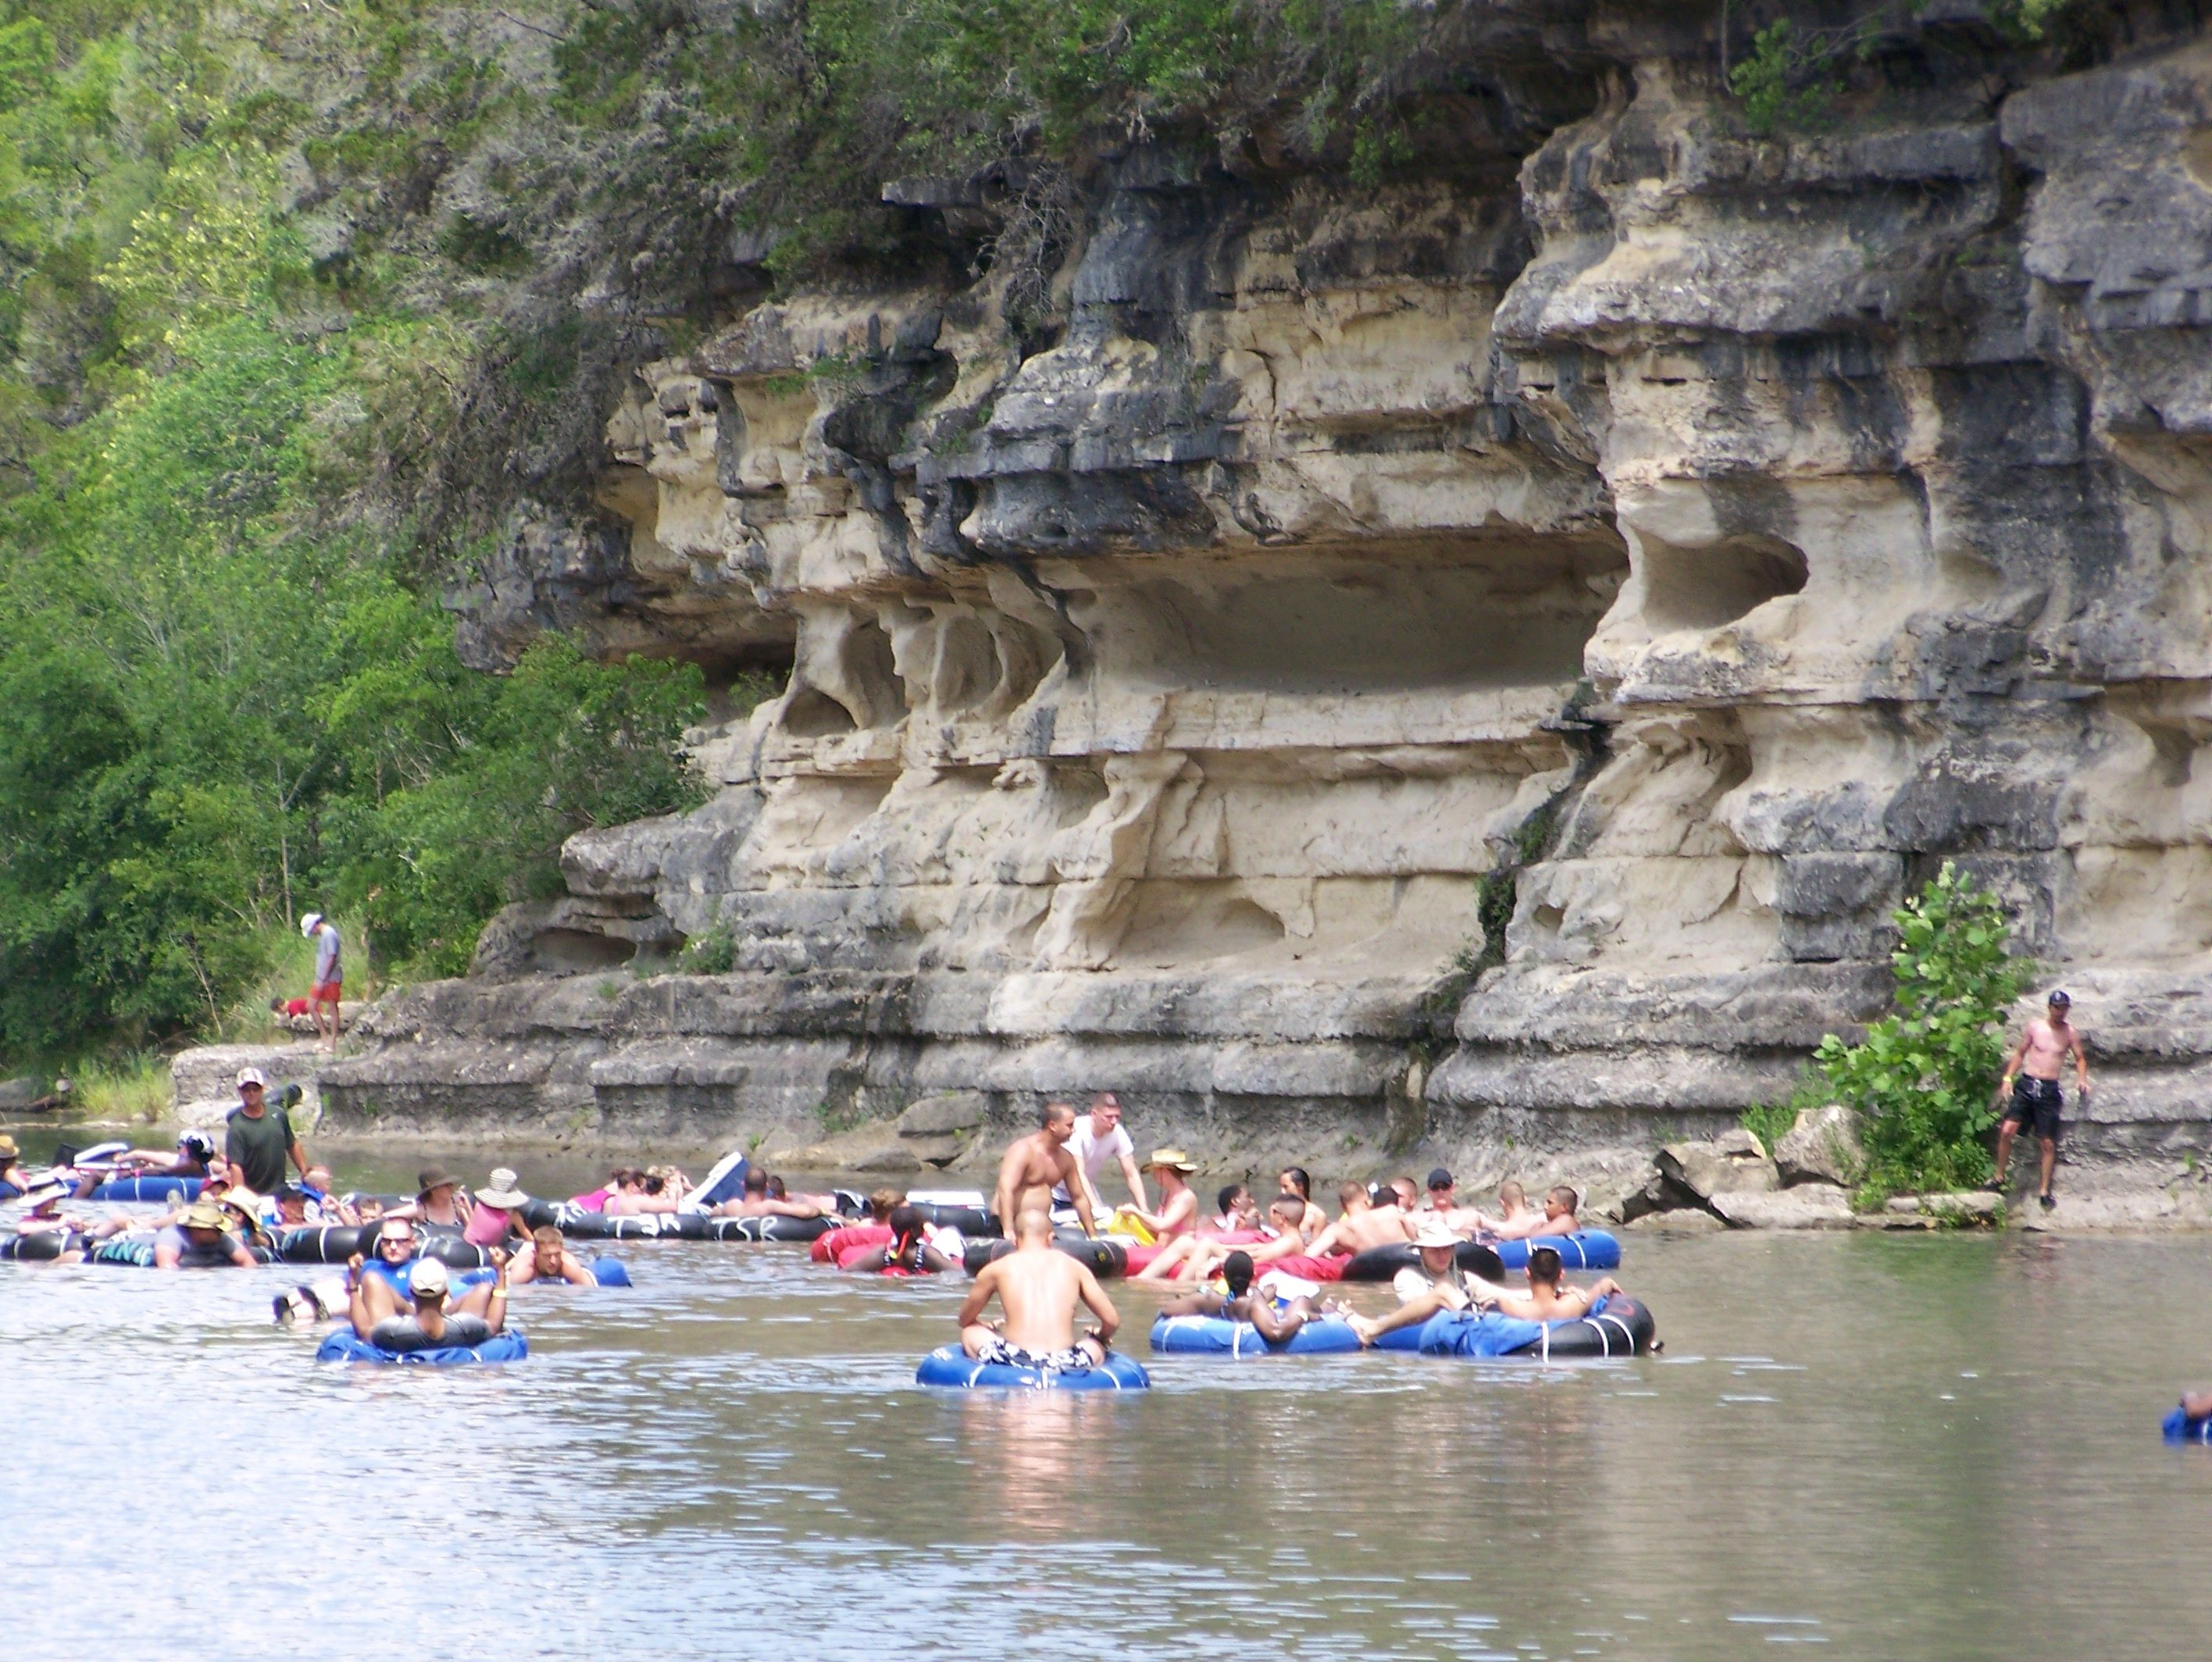 Tubing guadalupe river 4th crossing canyon lake texas for Floating the guadalupe river cabins